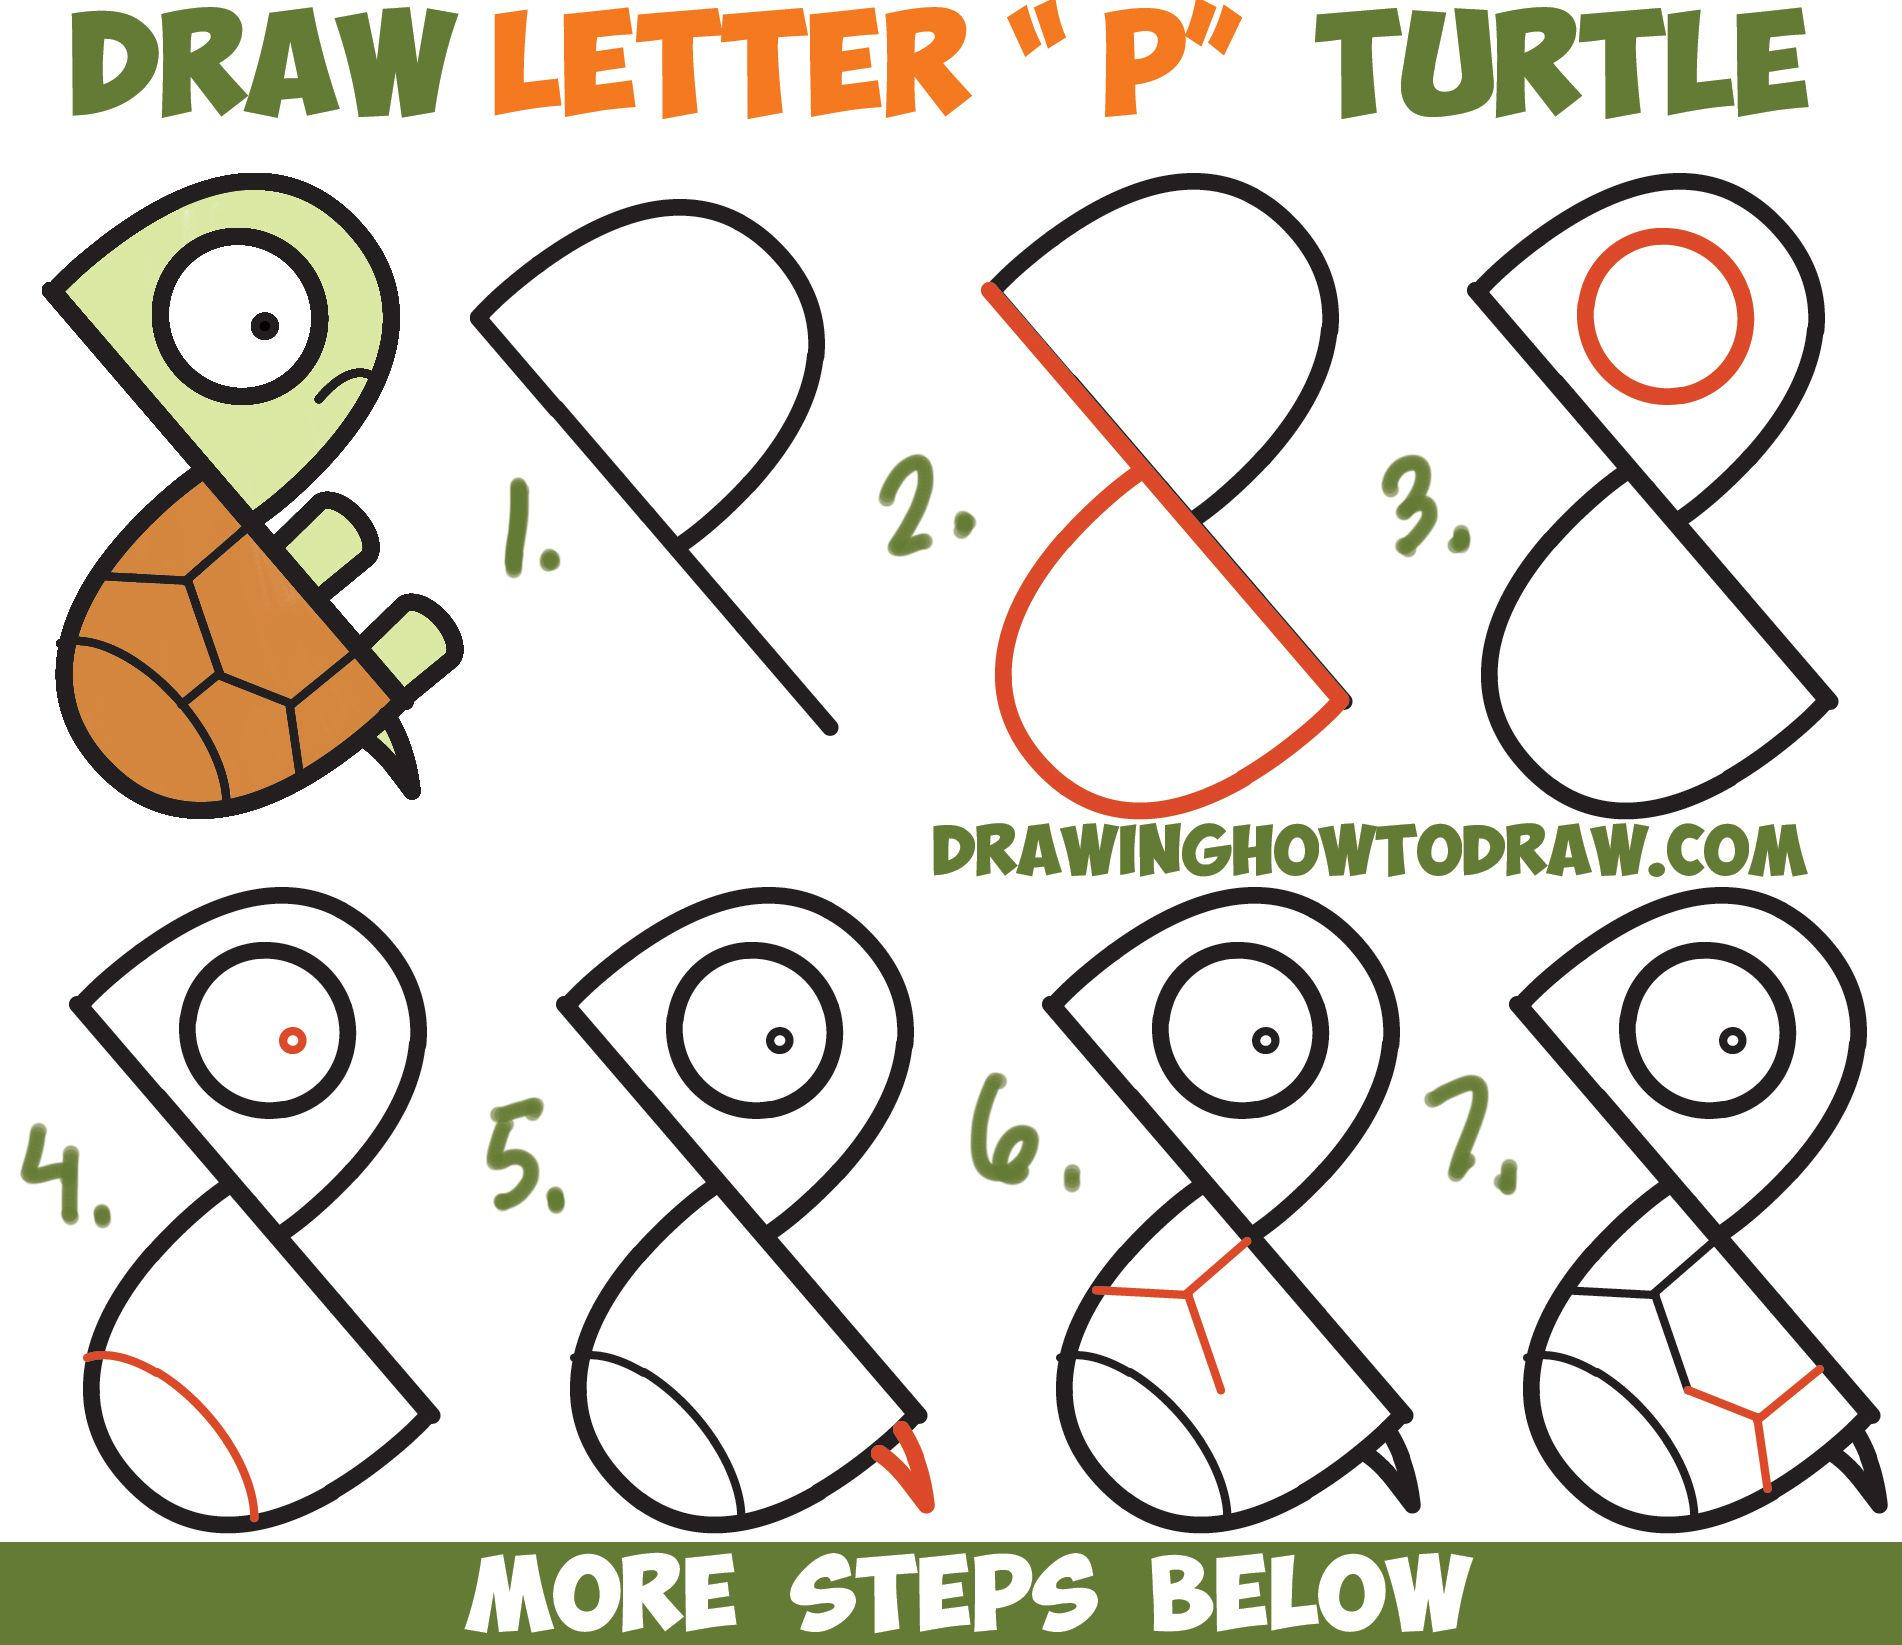 How to Draw a Cute Cartoon Turtle from Letter P Shapes Easy Step